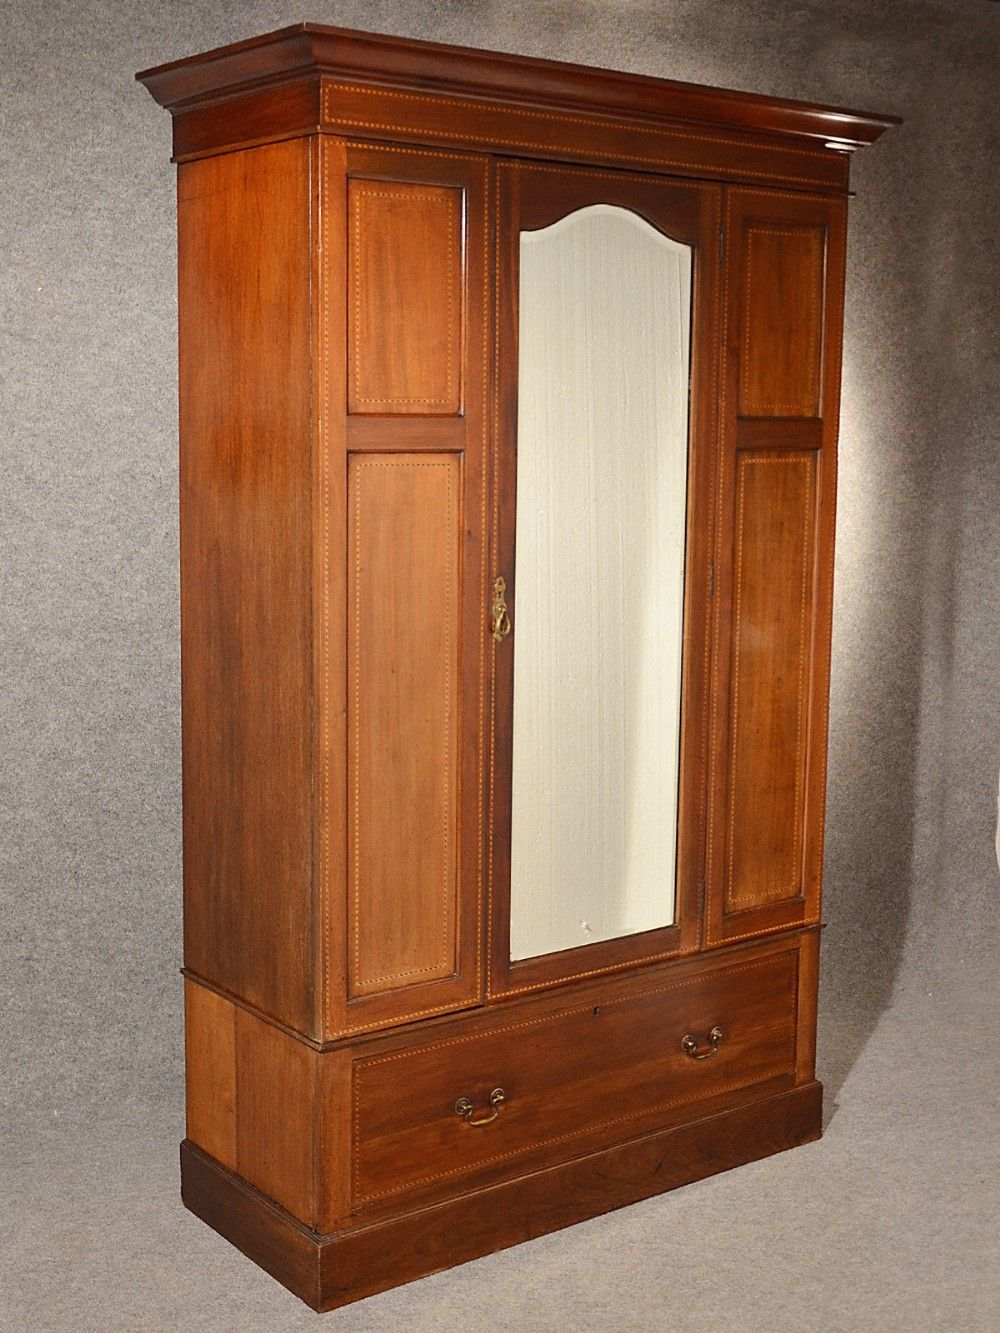 Antique Wardrobe Armoire Mirror Door Maple